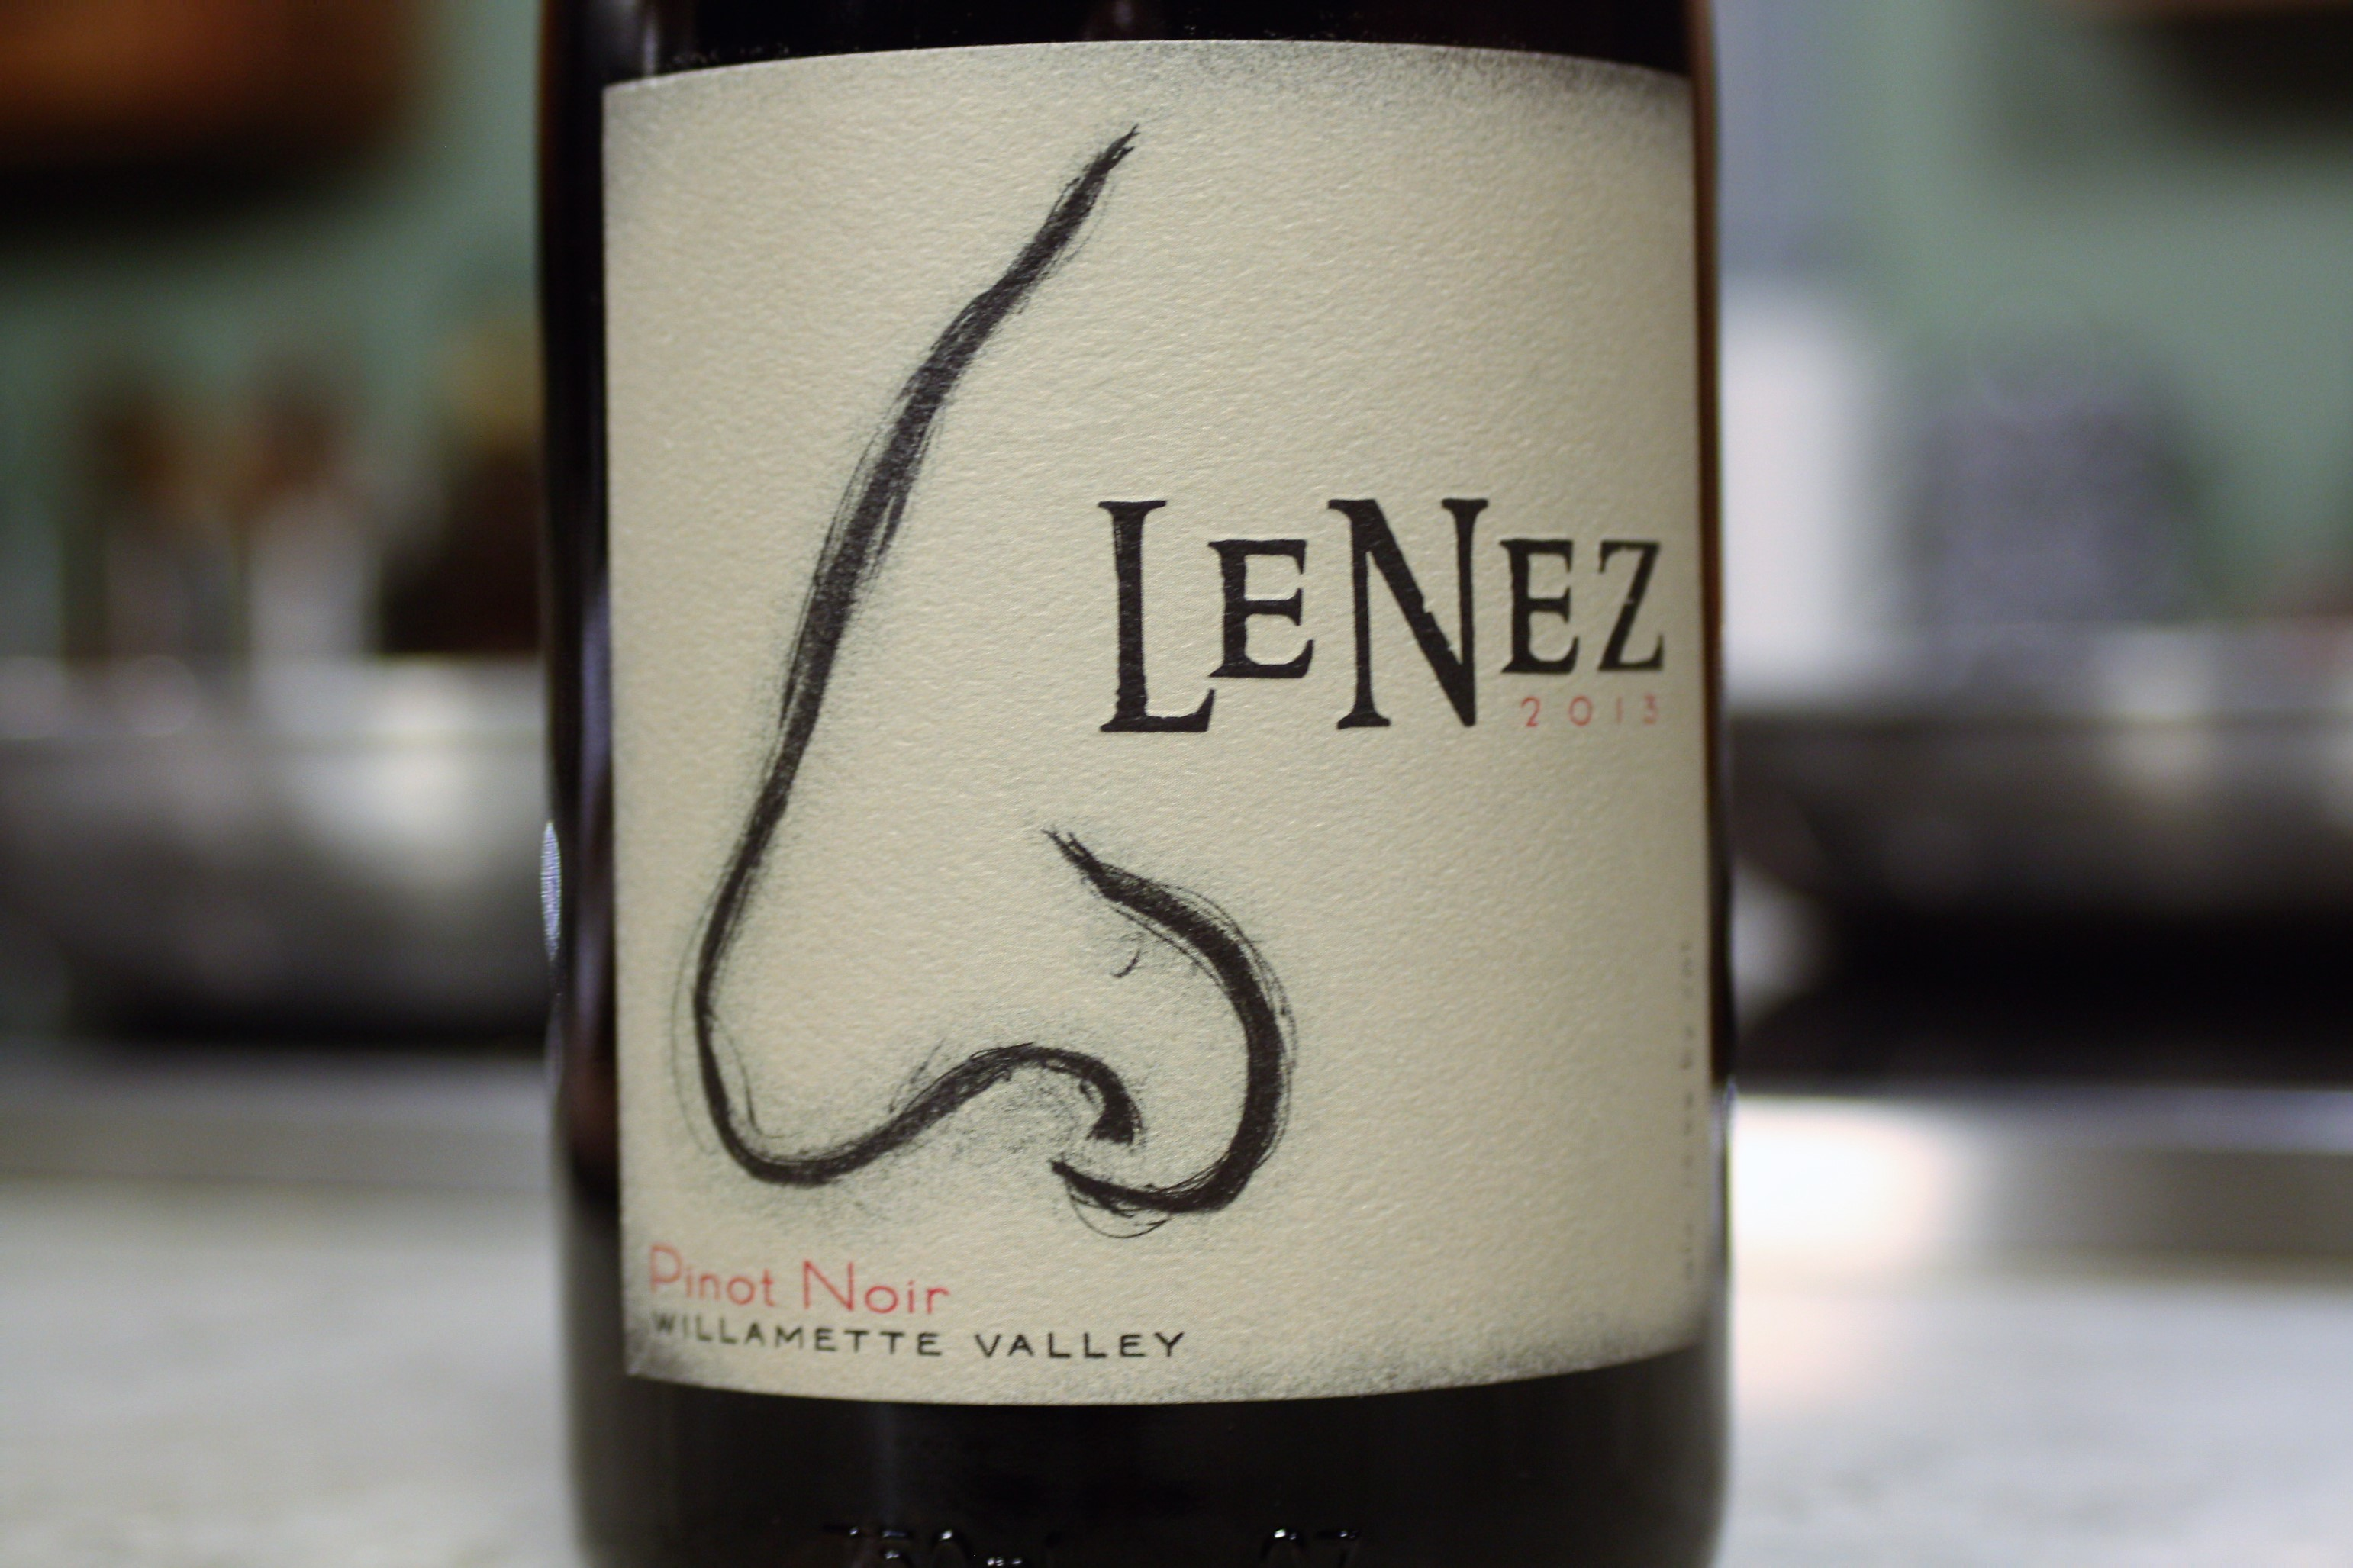 Lenné Estate, Yamhill-Carlton District Pinot Noir LeNez (2013)